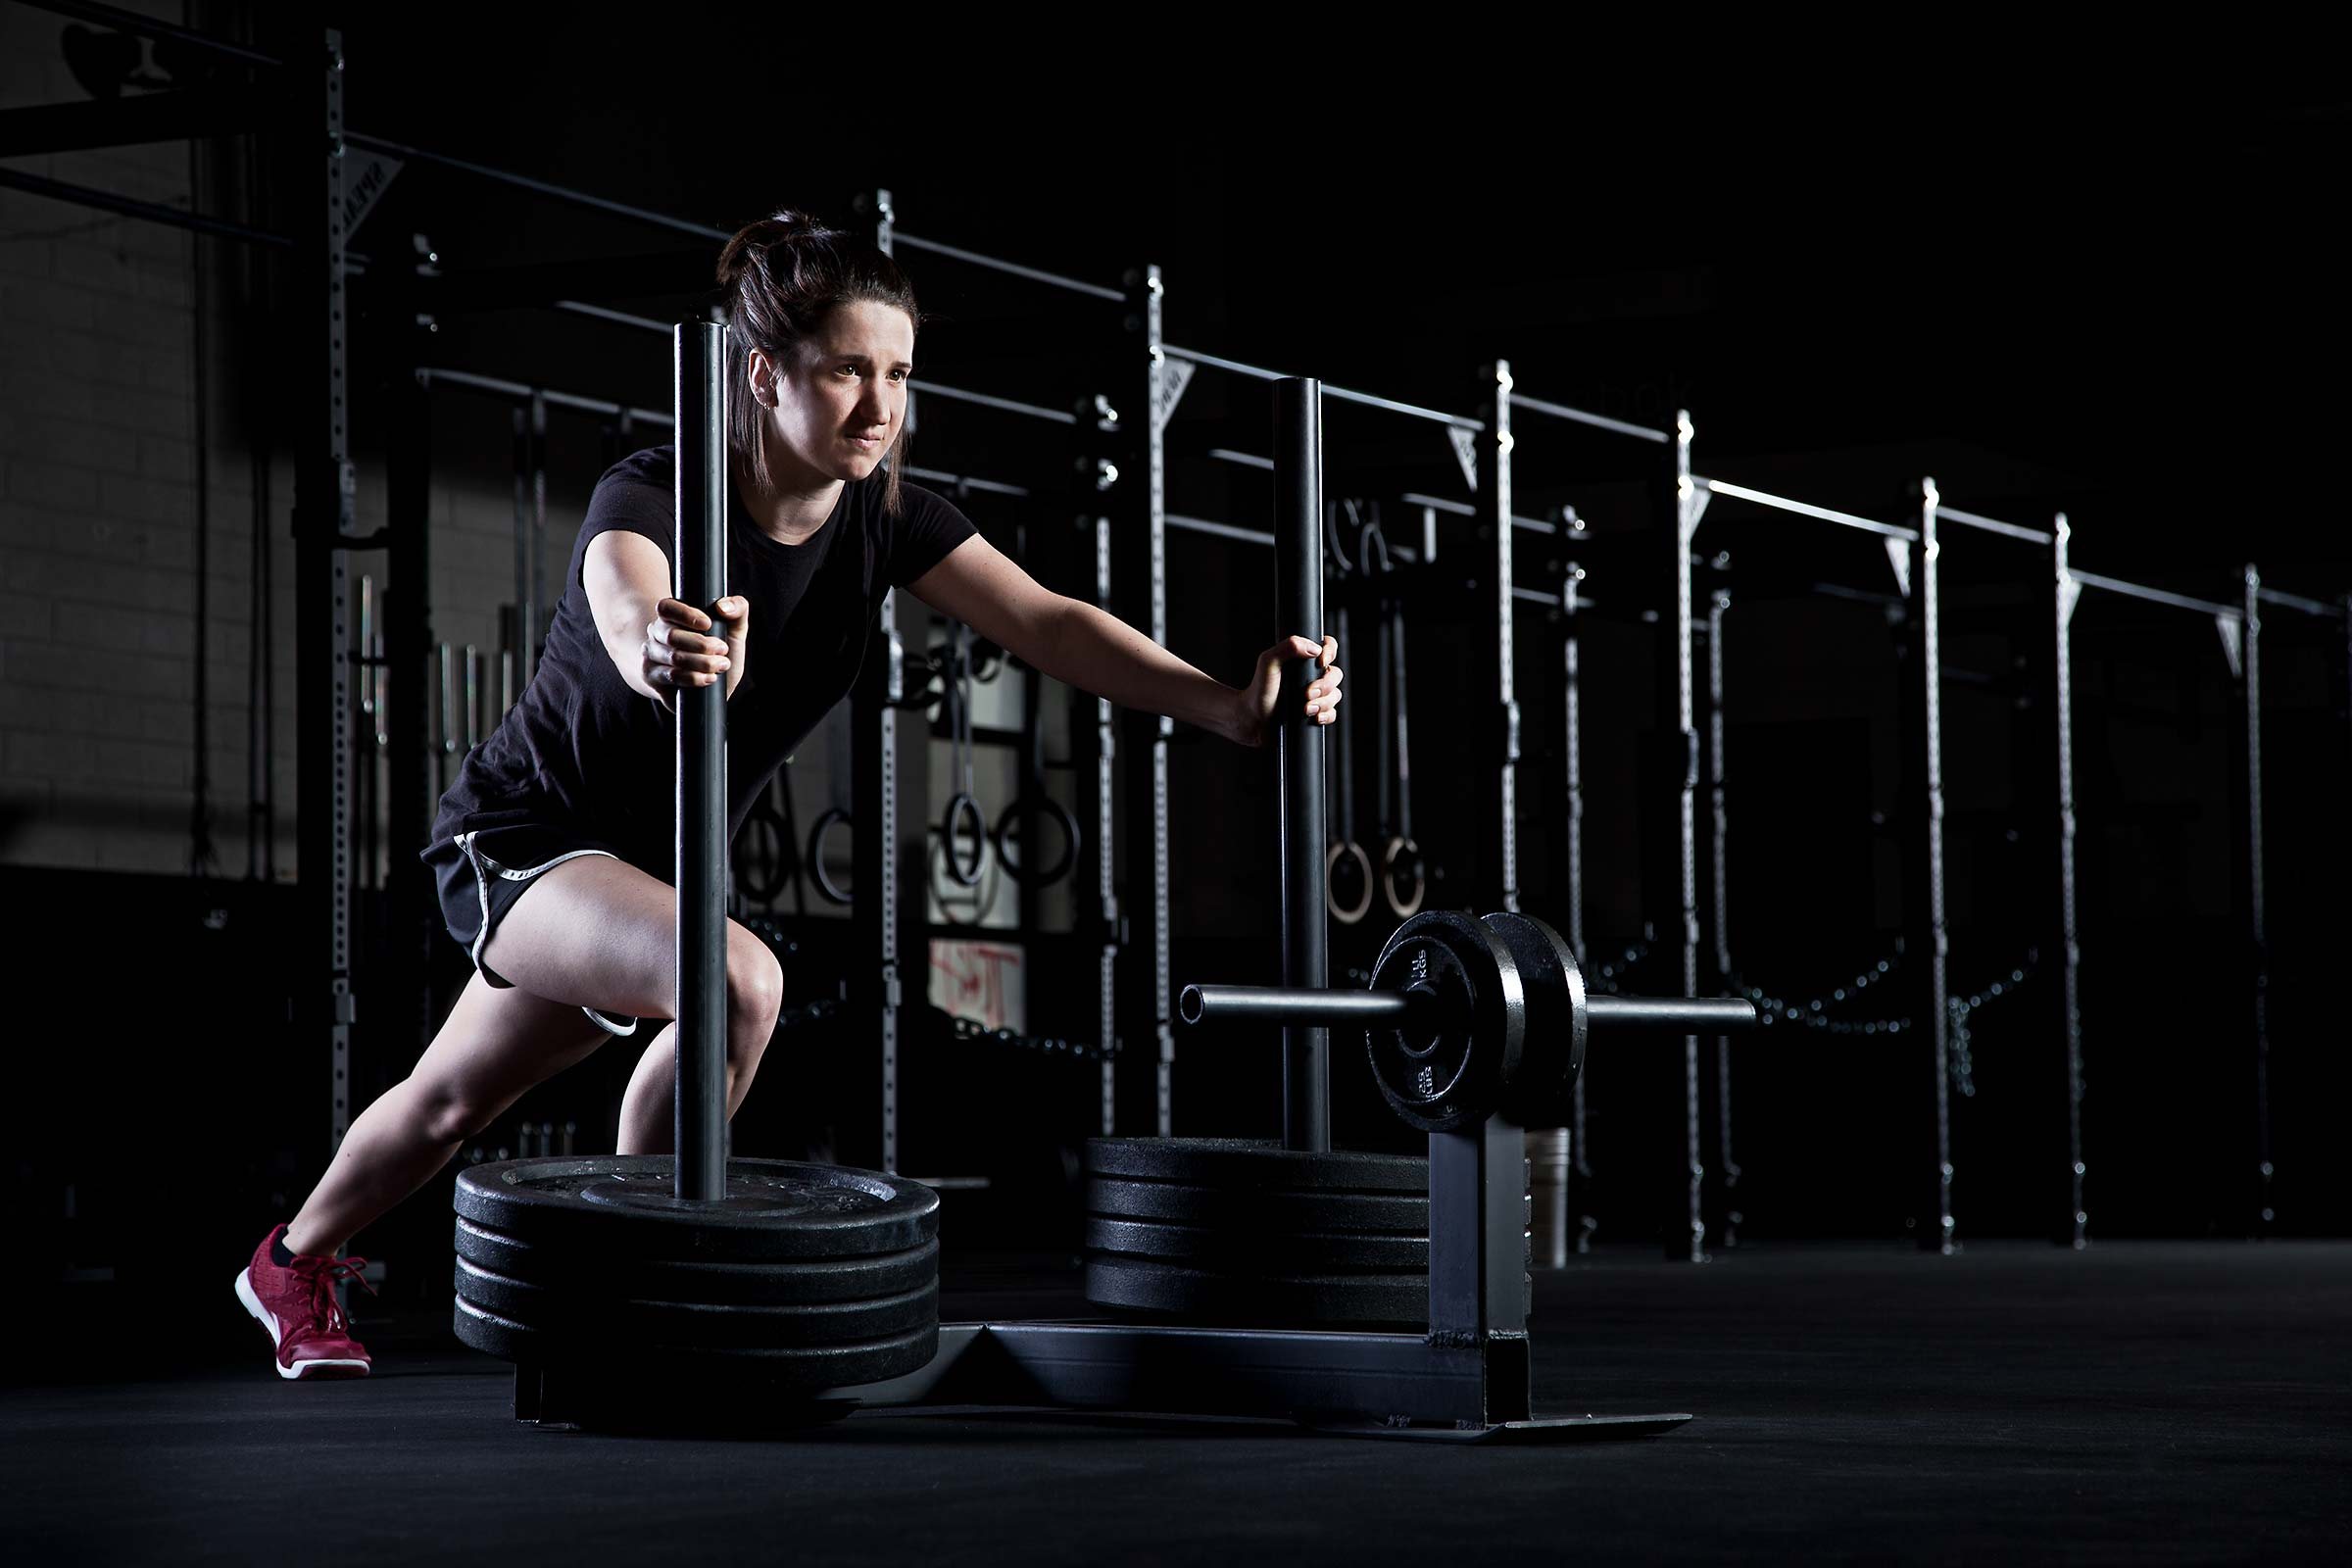 an action shot of a young woman pushing a weight sled in a Connecticut gym